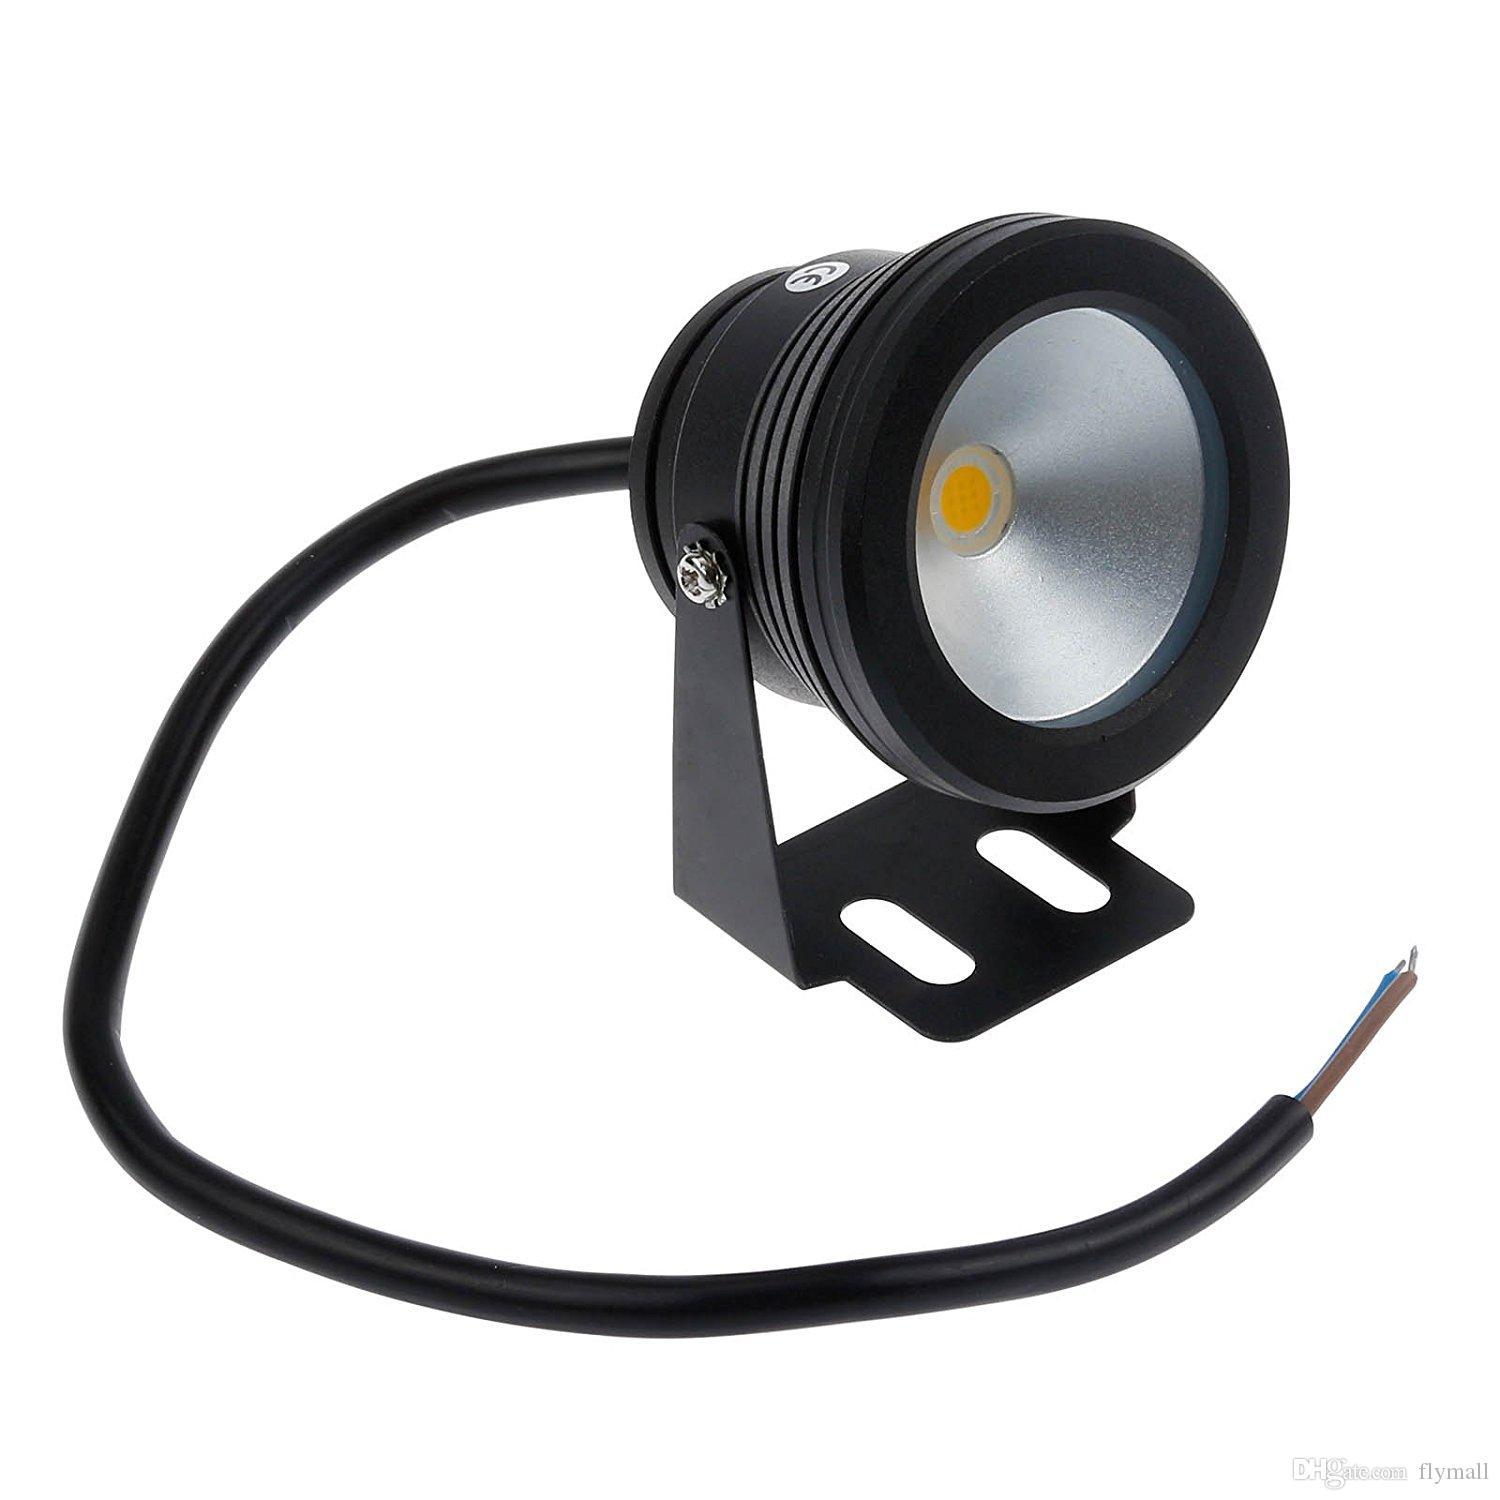 10W DC 12V Underwater Led Light Spotlights Cool White Warm White Waterproof IP68 Pond Pool Lamp For Fountain Lighting Landscape Spot Light